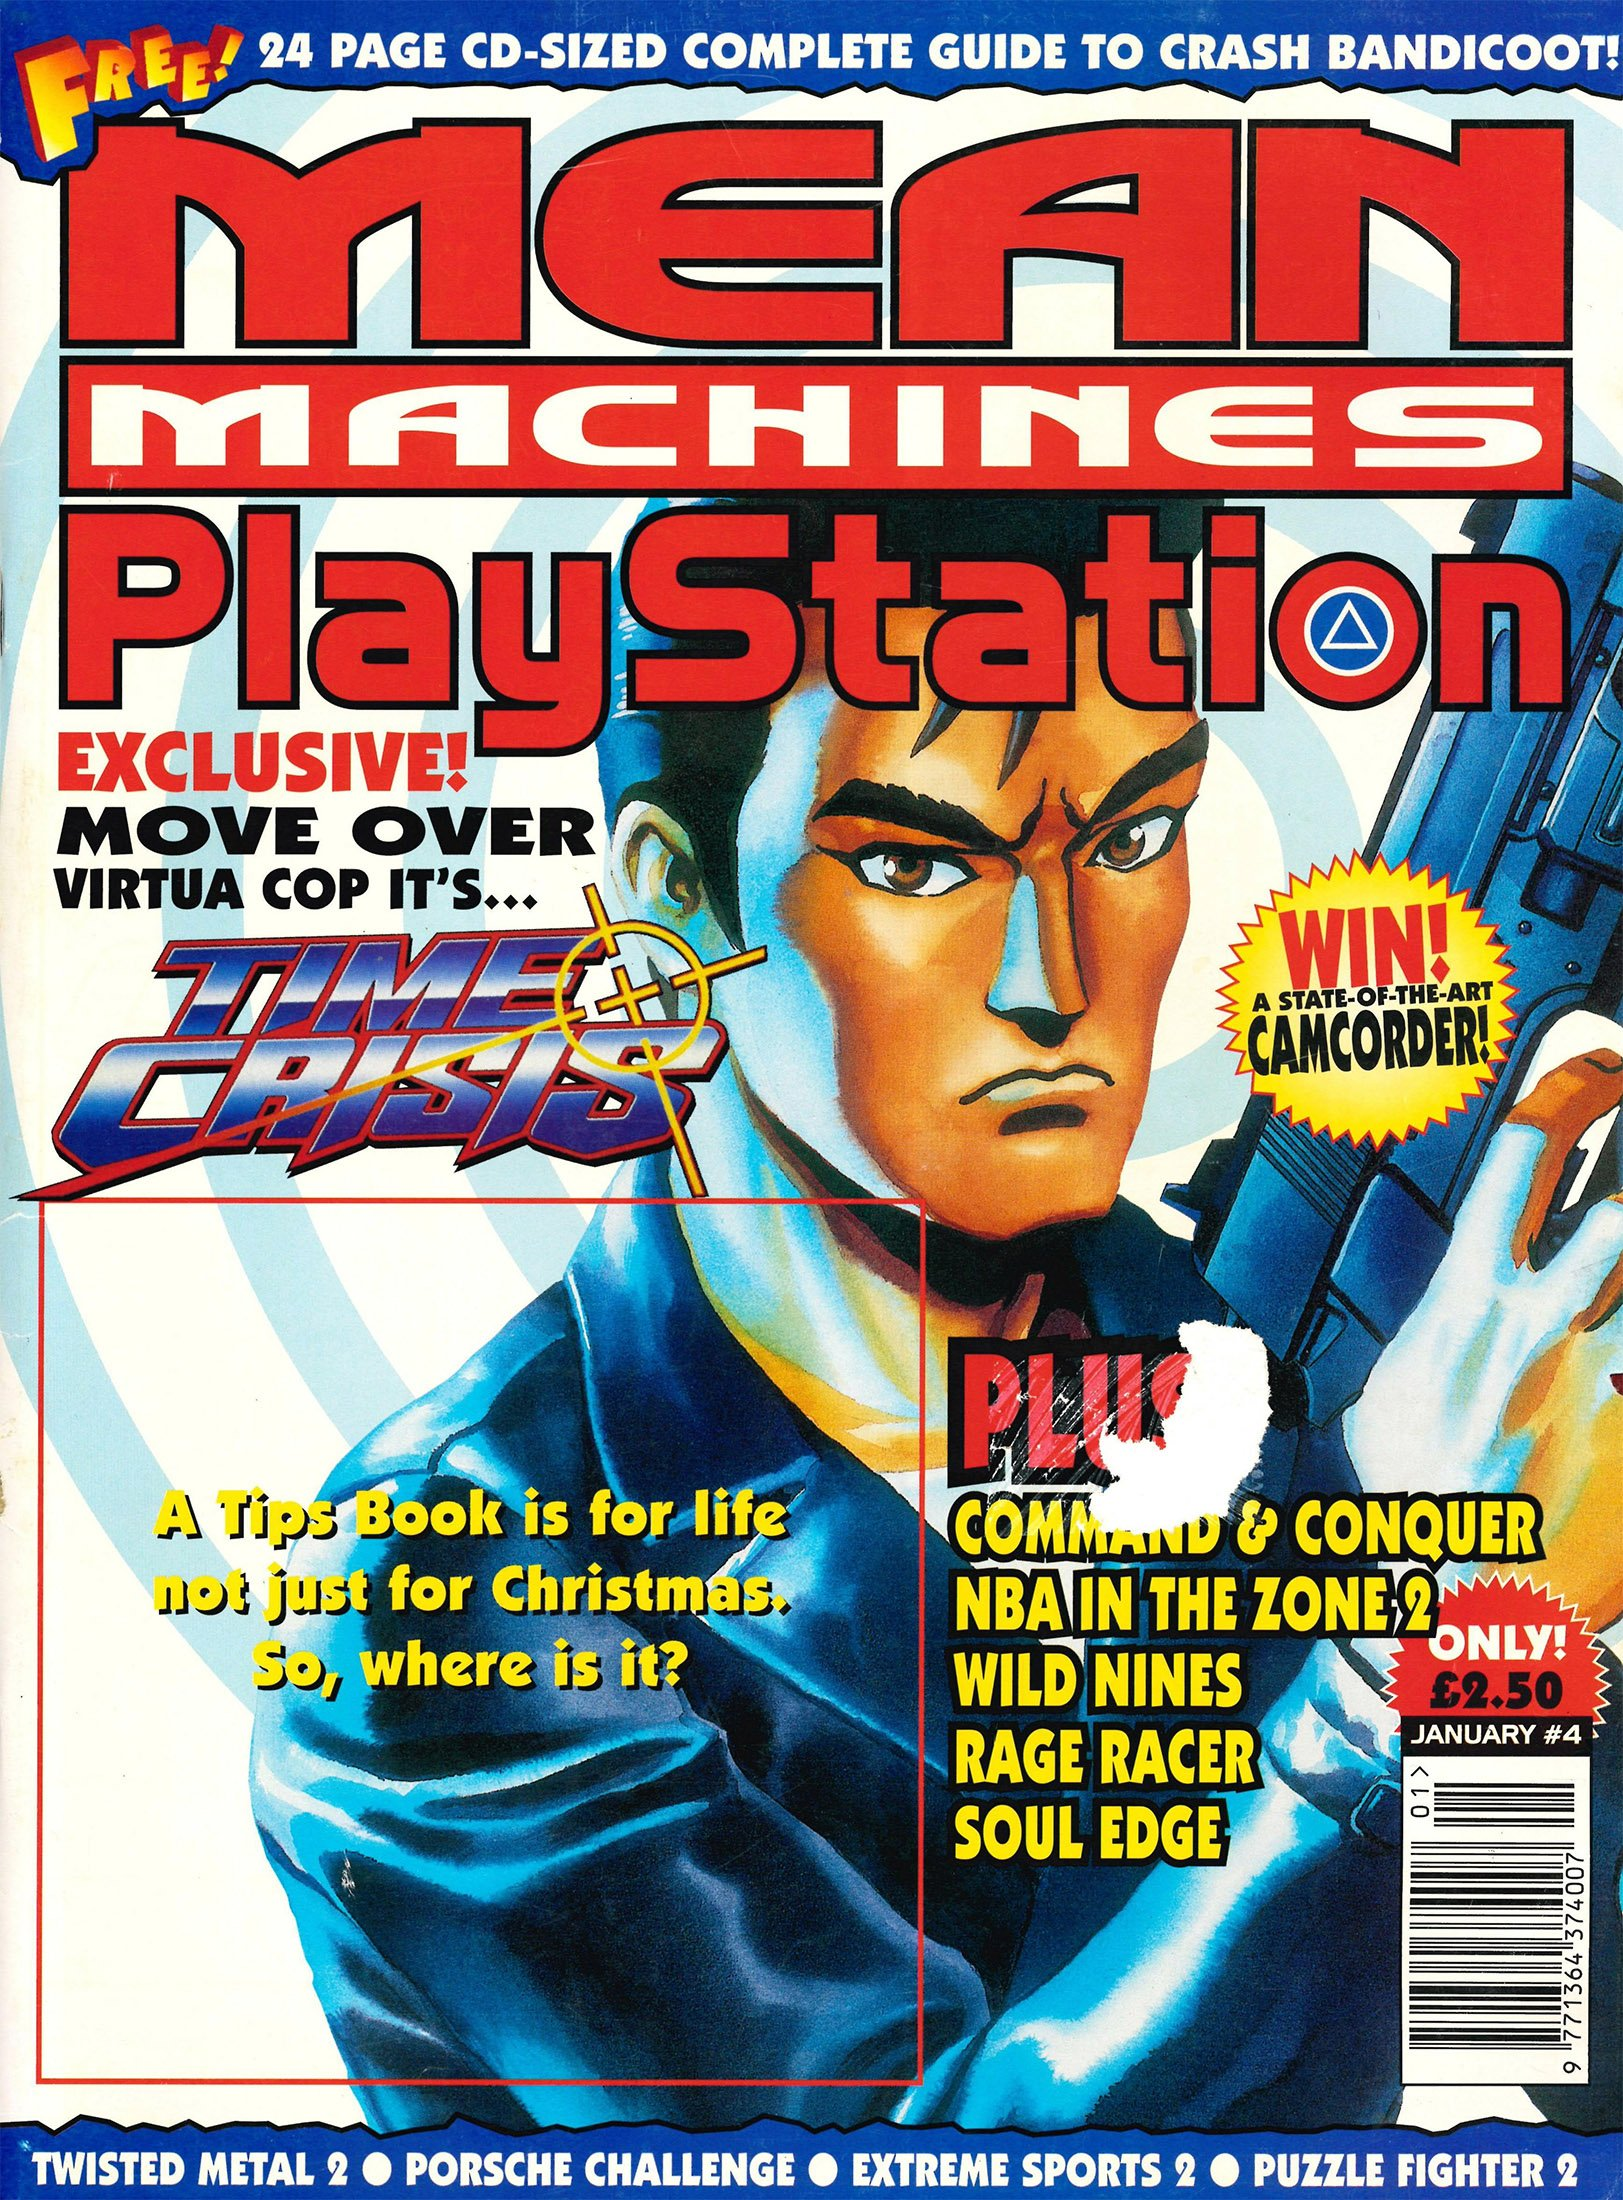 Mean Machines Playstation 04 (January 1997)